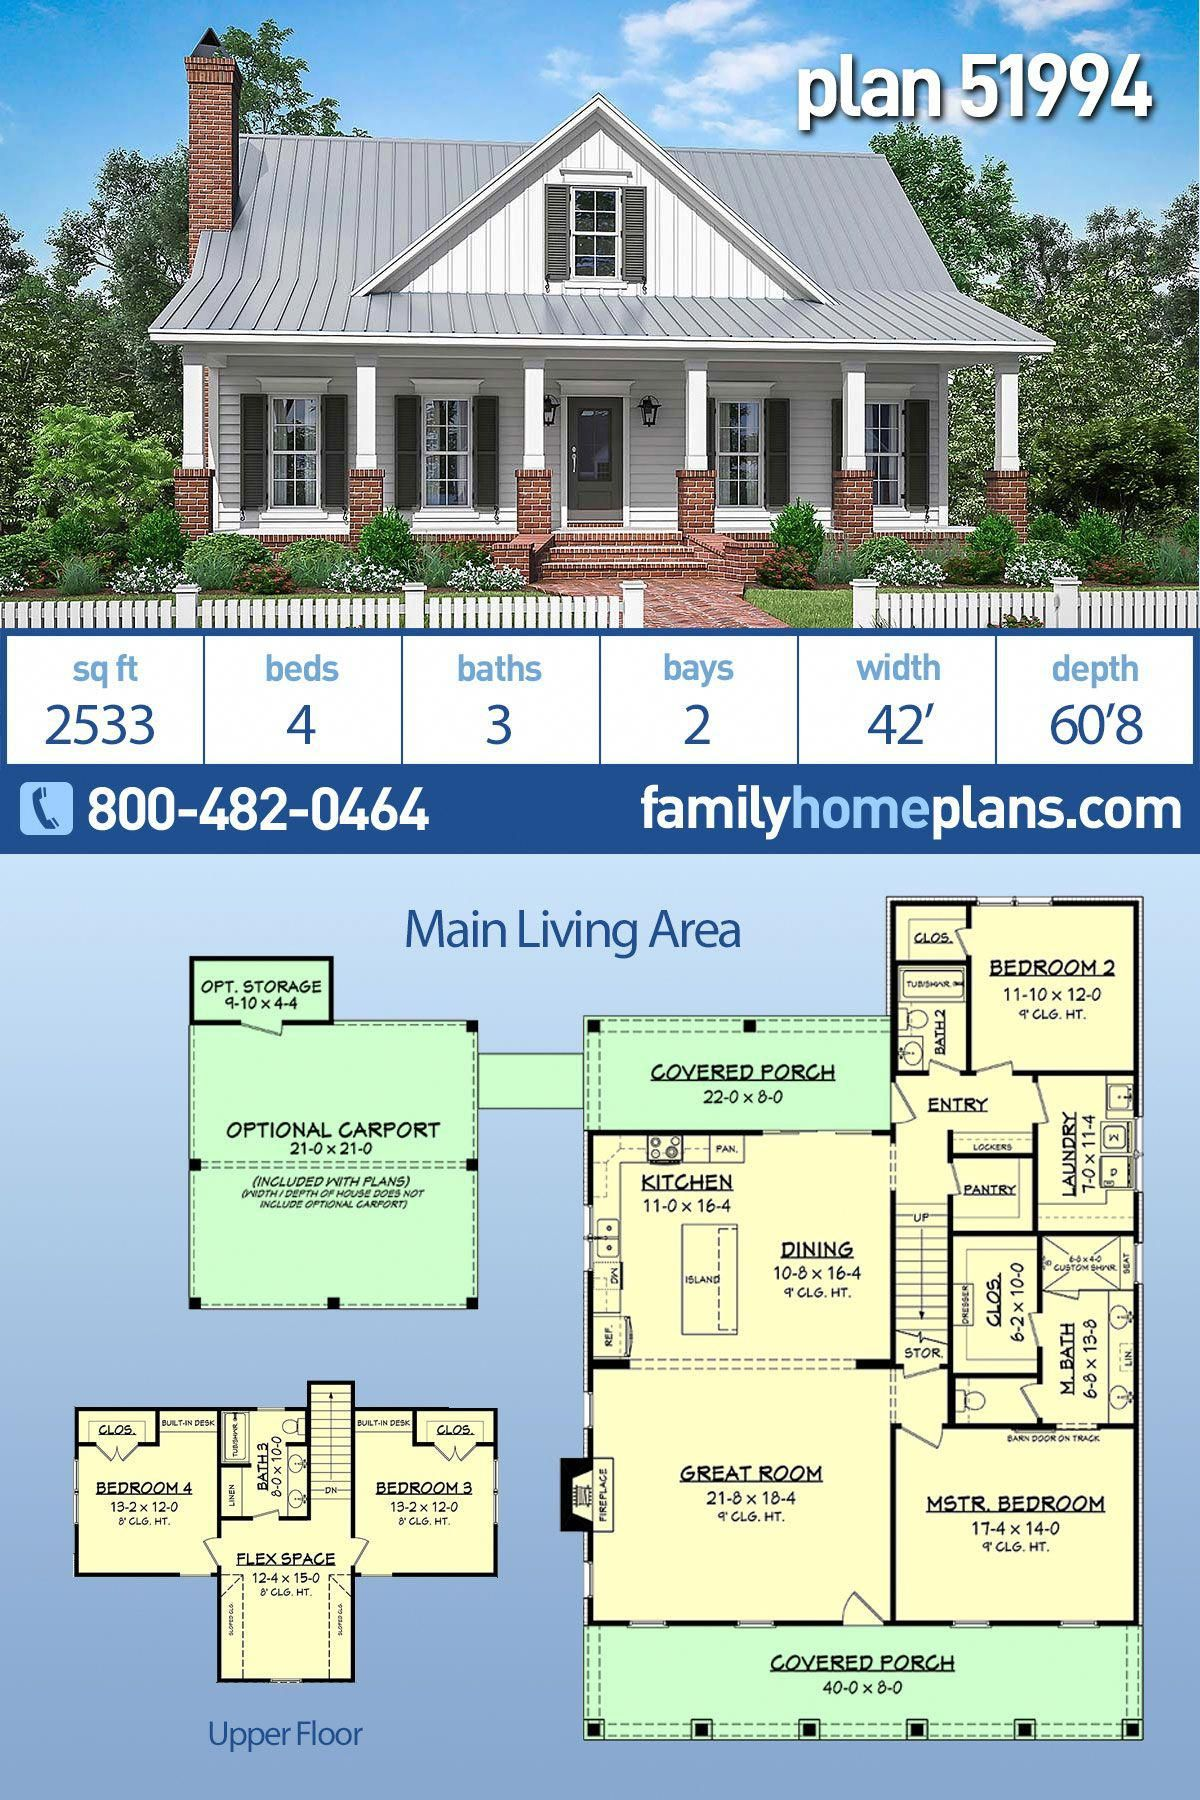 2 Story Country House Plan With Large Porches And An Open Living Concept The First Floor Provides In 2020 Country House Plan Family House Plans House Plans Farmhouse